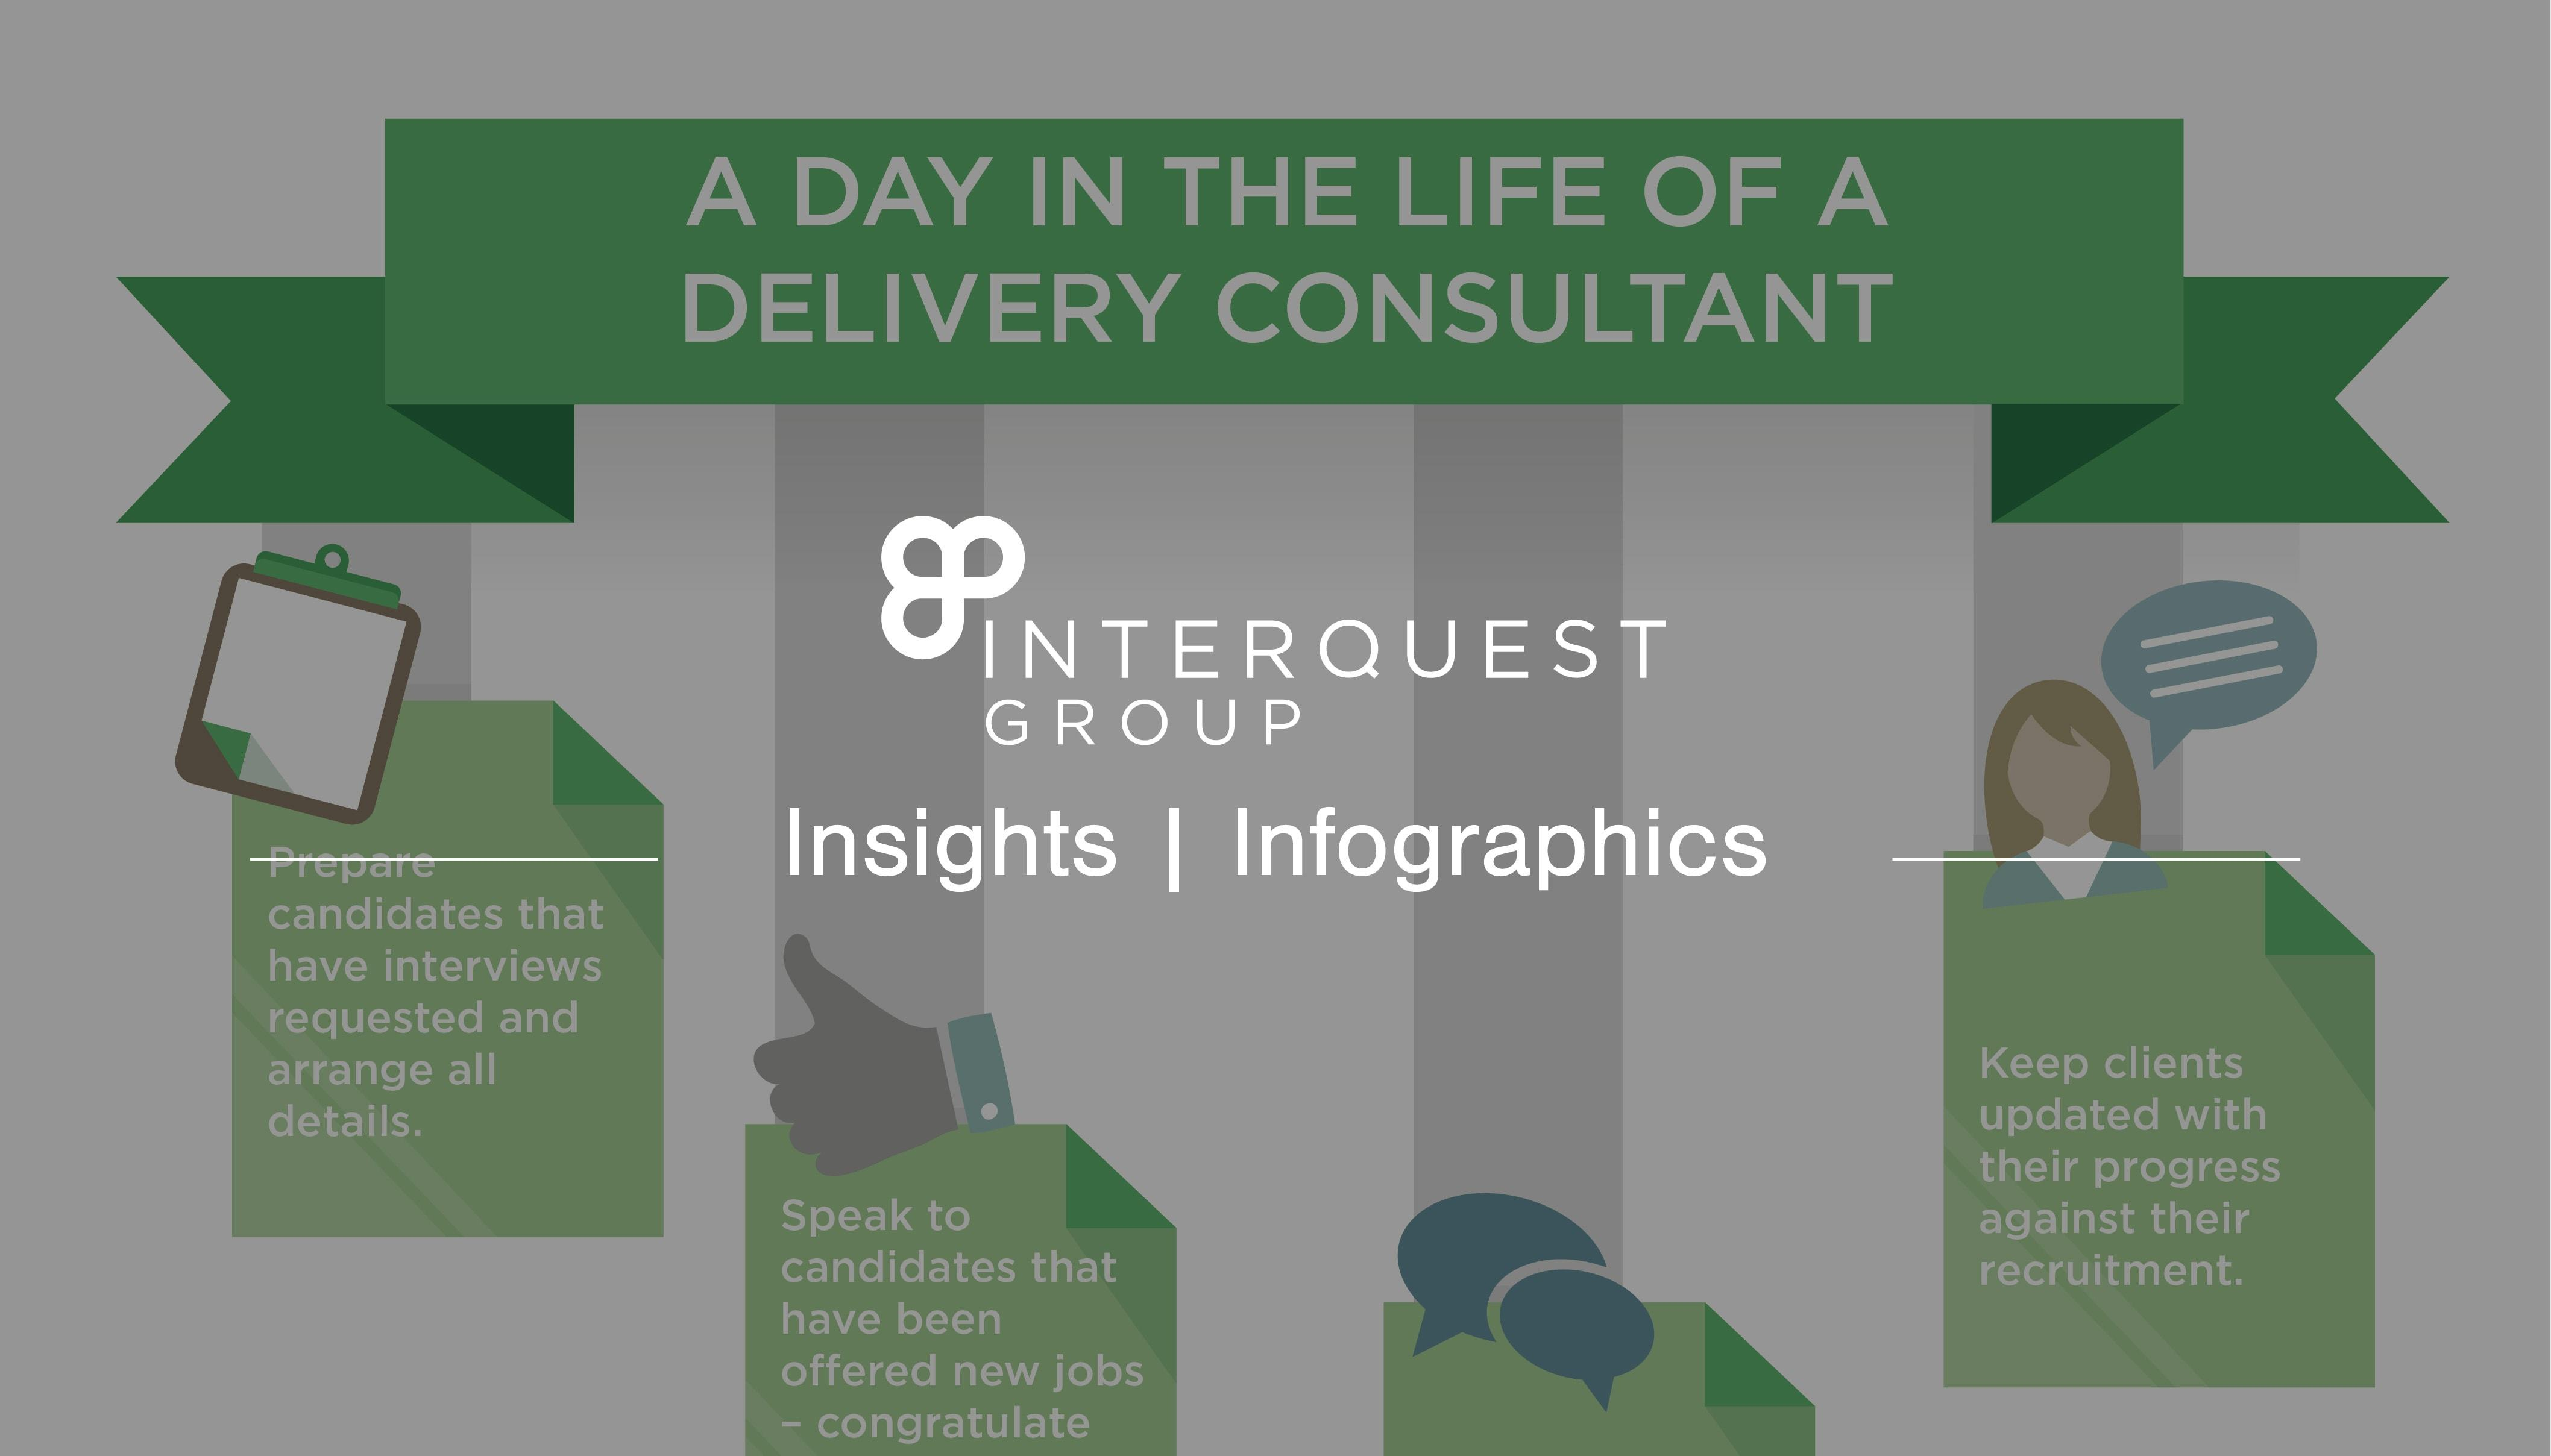 A day in the life of a delivery consultant infographic banner